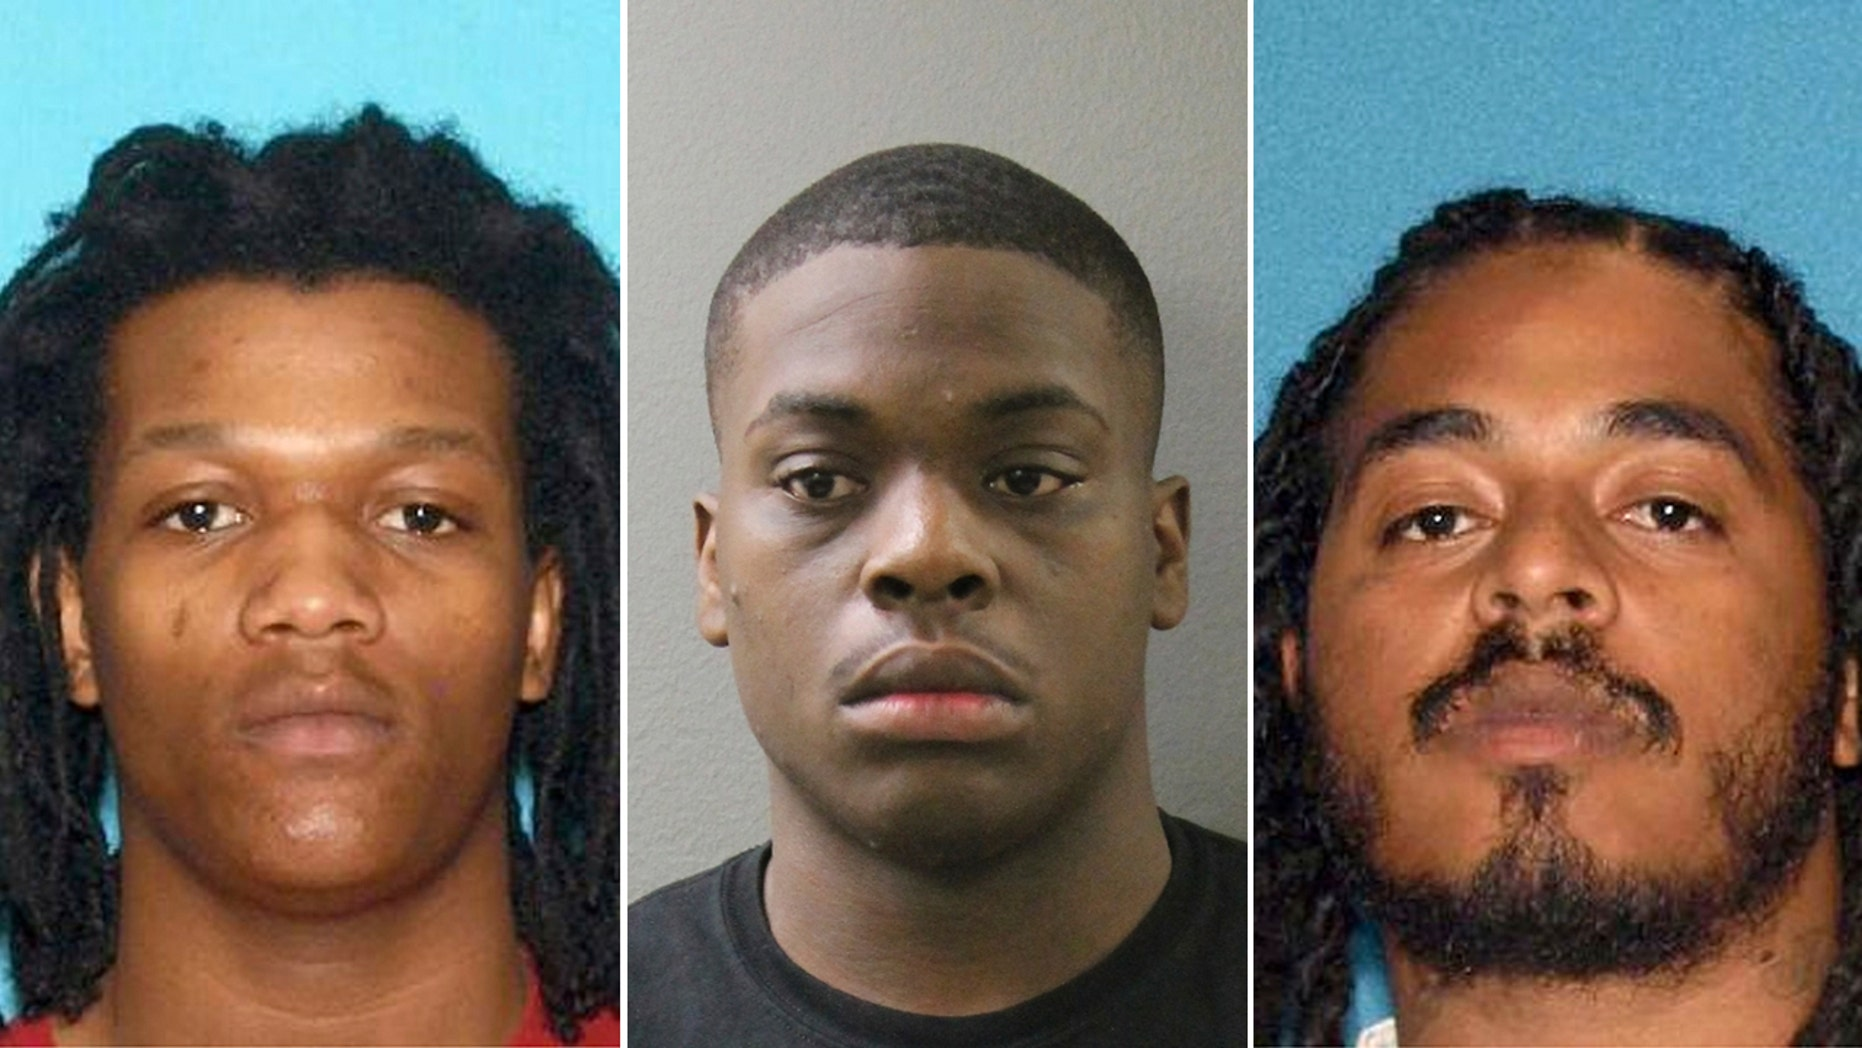 Charles Gamble, 18, (left) Leroy Frazier III, 20, (center) and Michael Elliott, 25, (right) have been arrested and charged in the death of a 9-year-old New Jersey girl hit by a stray bullet as she slept in her bed last month.